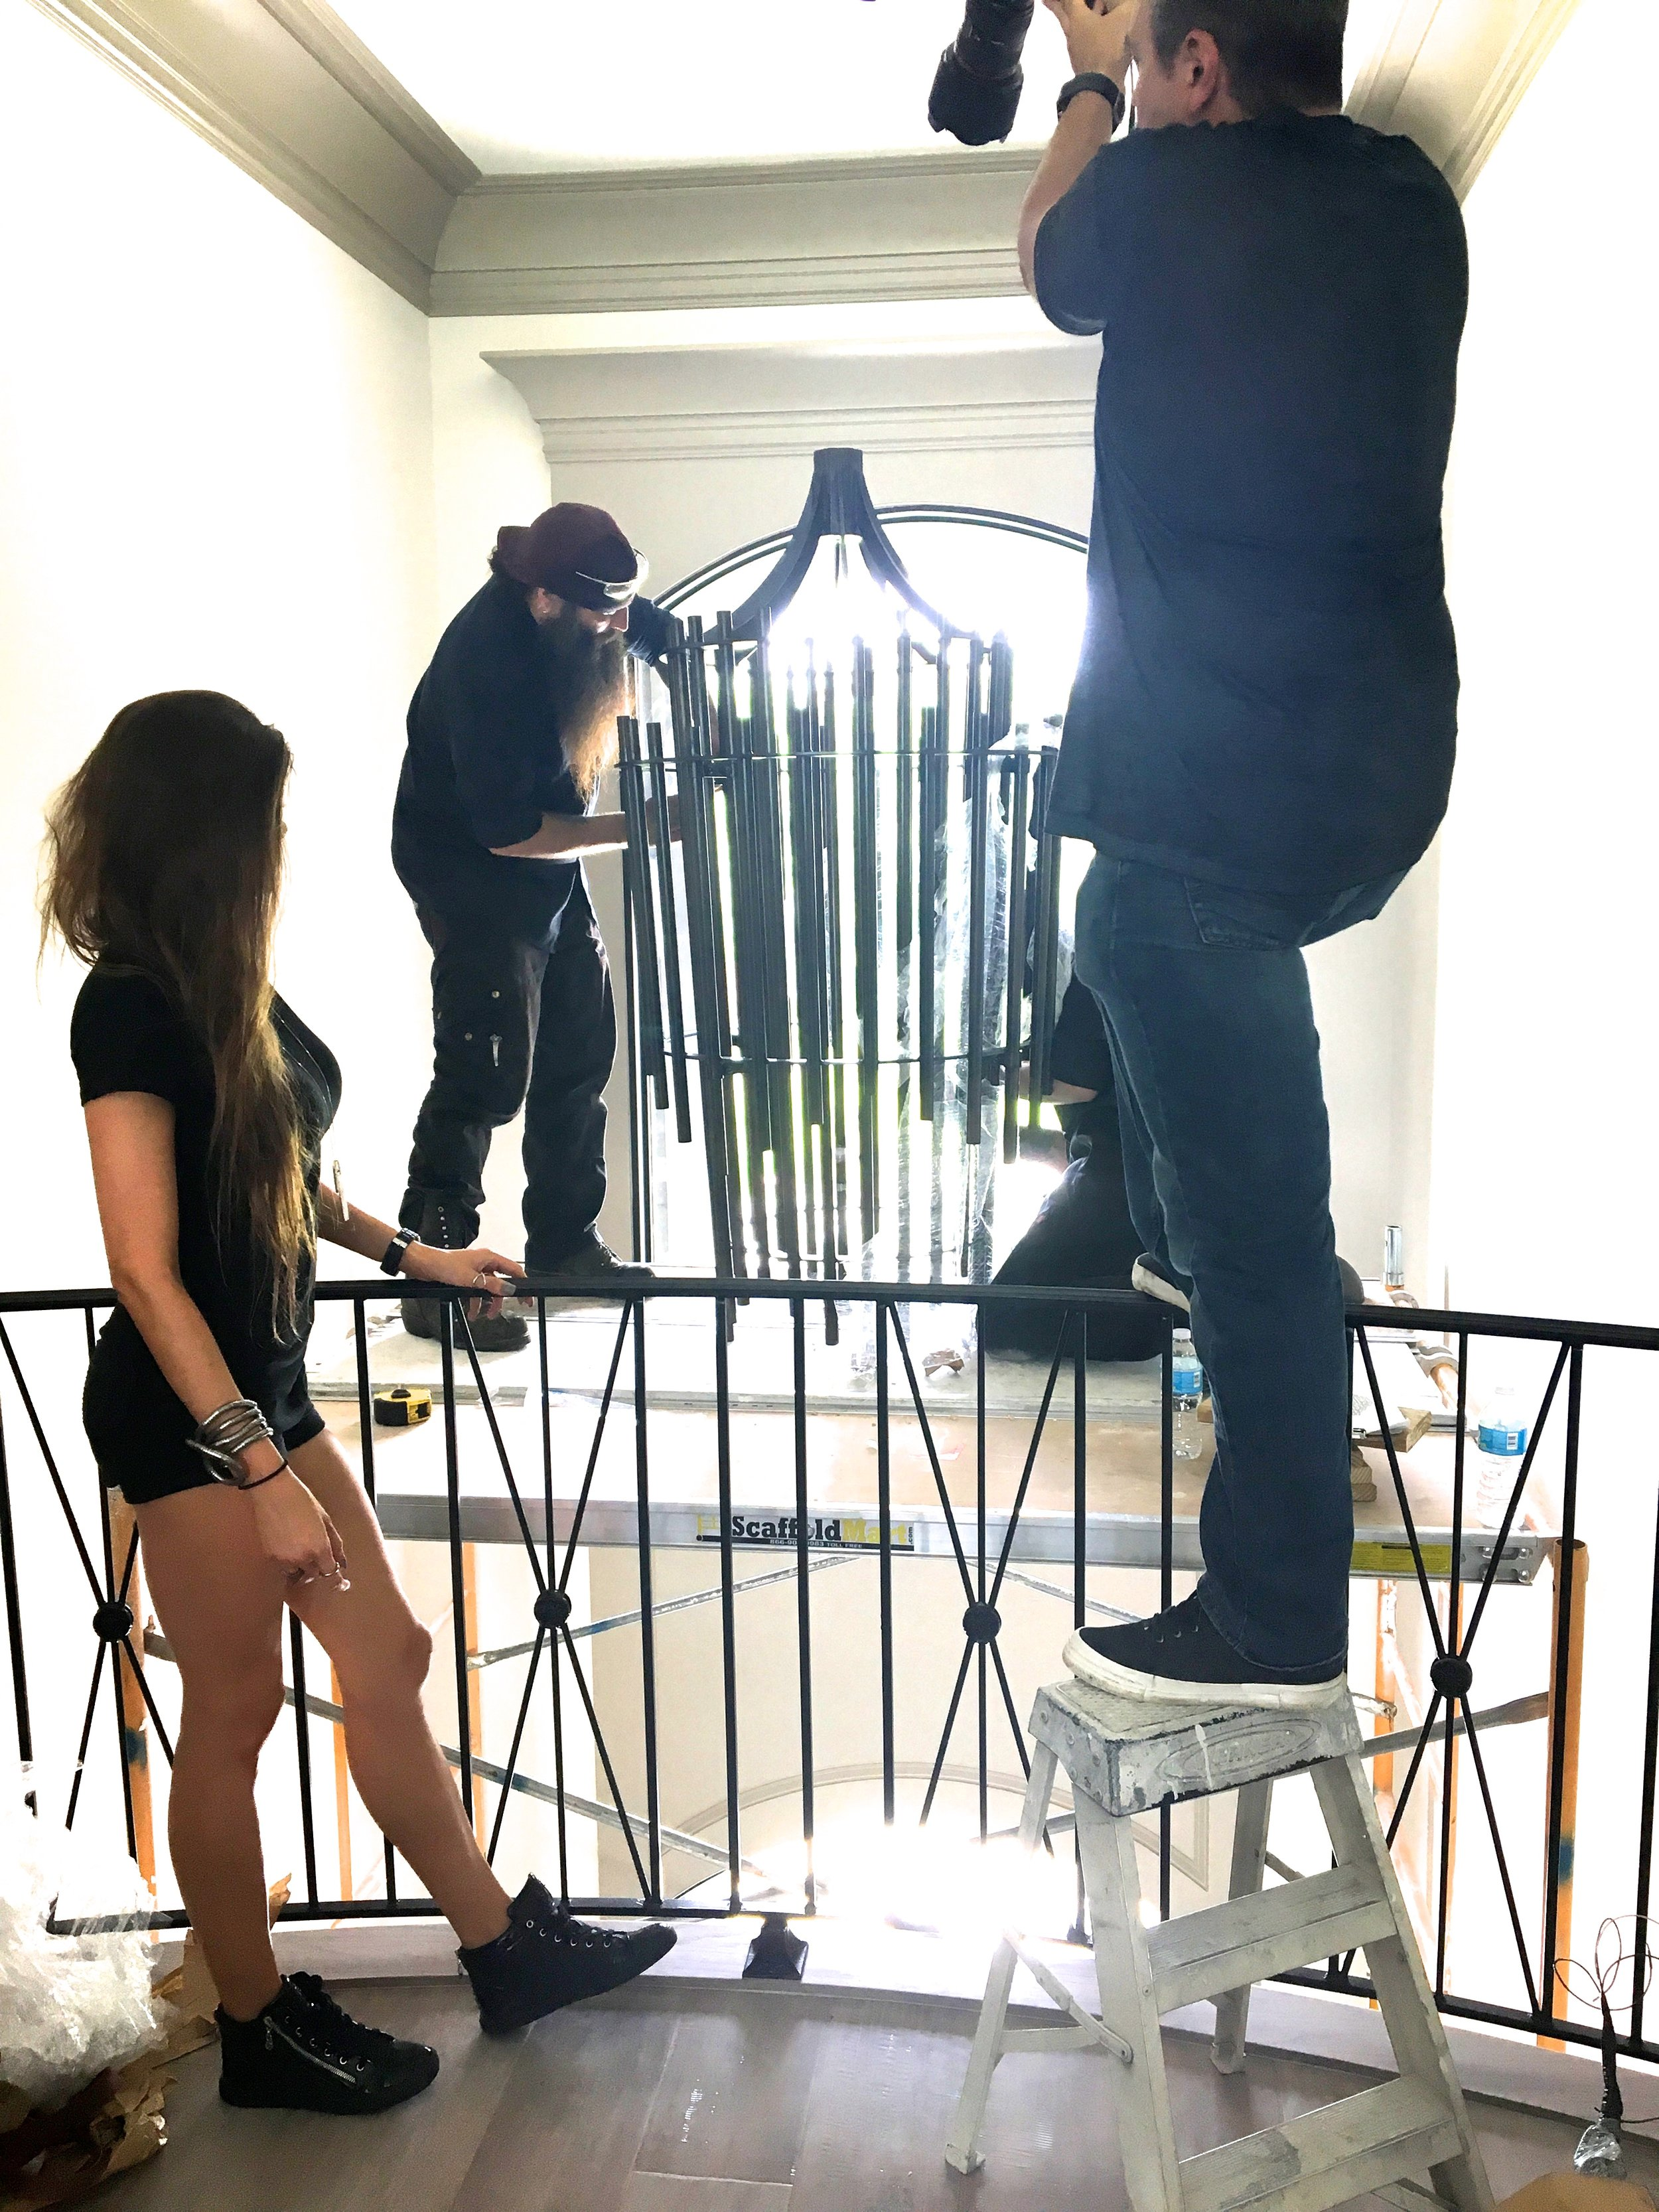 Behind the scenes photo of the 9 hour chandelier install!